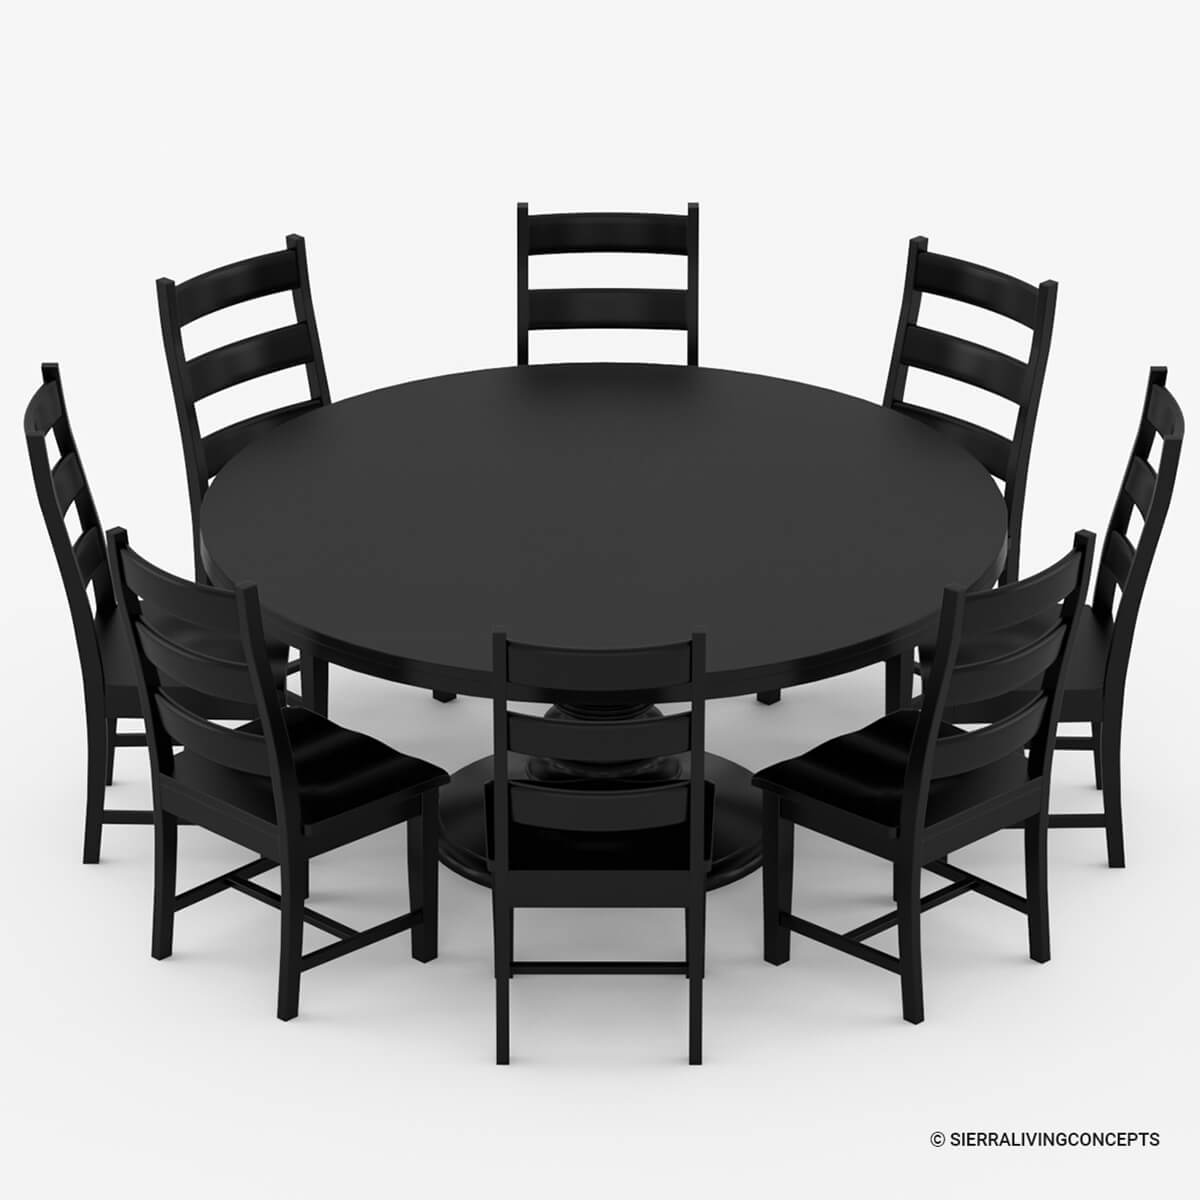 Nottingham rustic solid wood black round dining room table set for Black round dining table